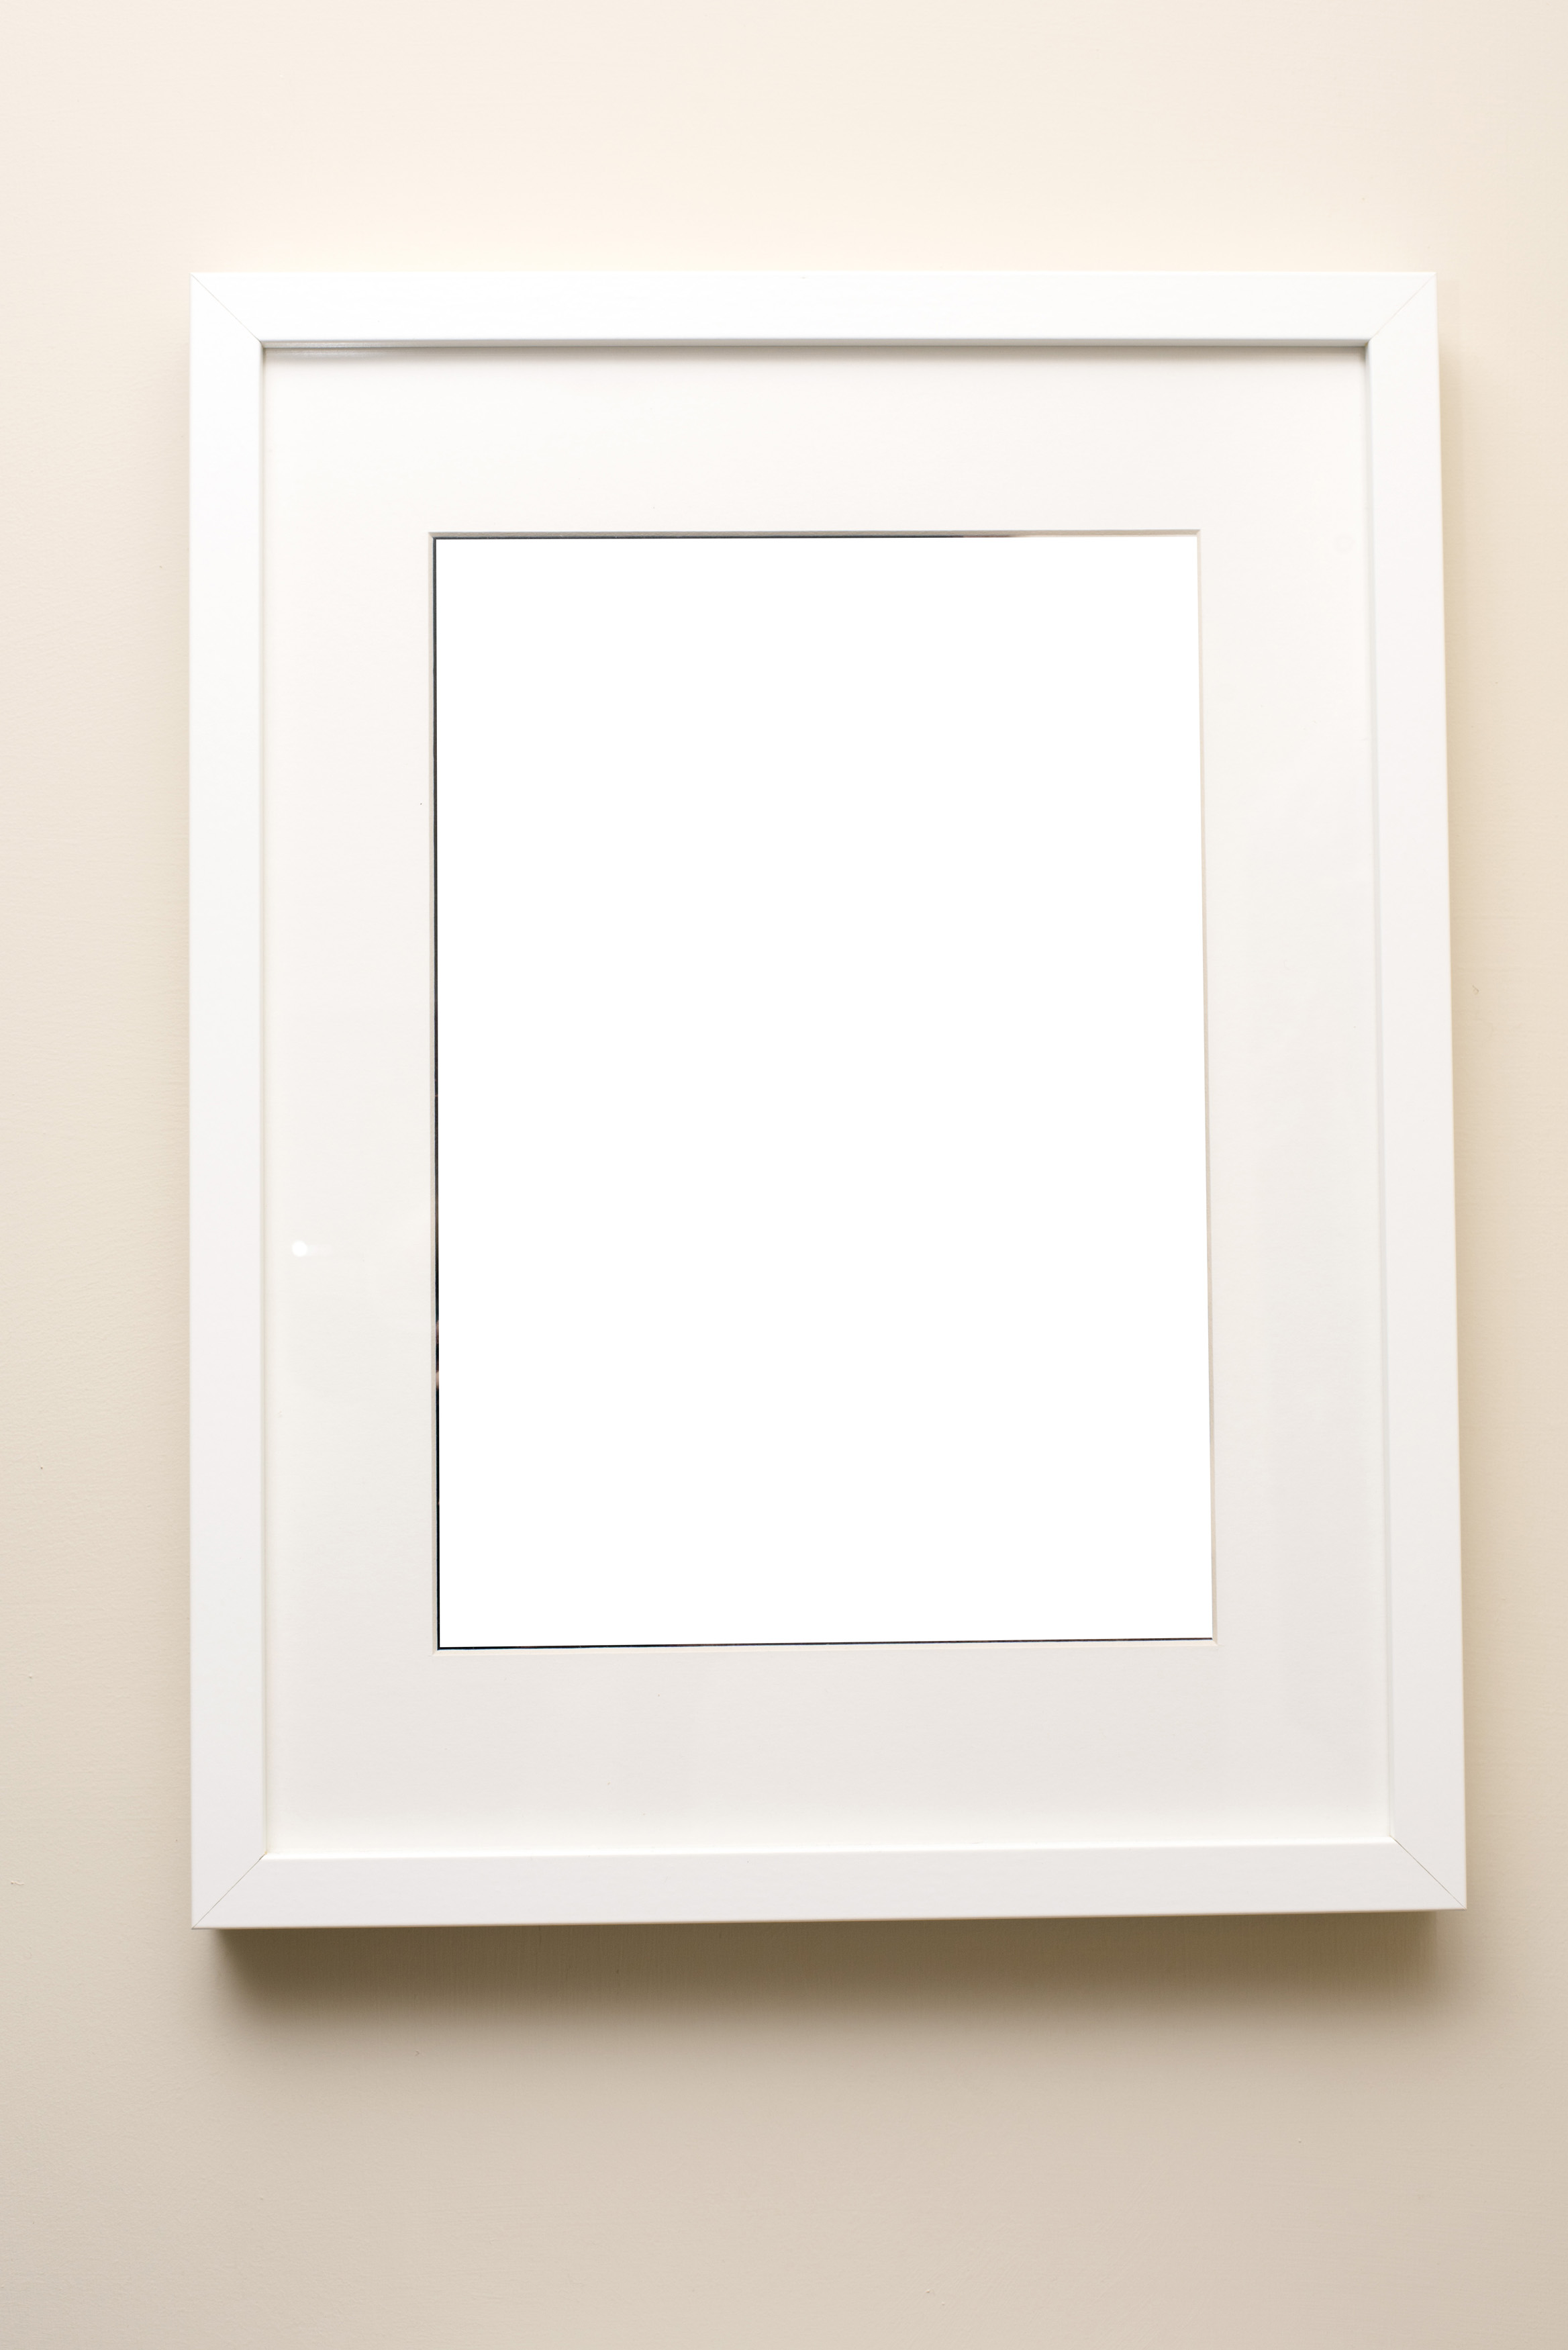 Free Stock Photo 13110 Simple empty white picture frame | freeimageslive